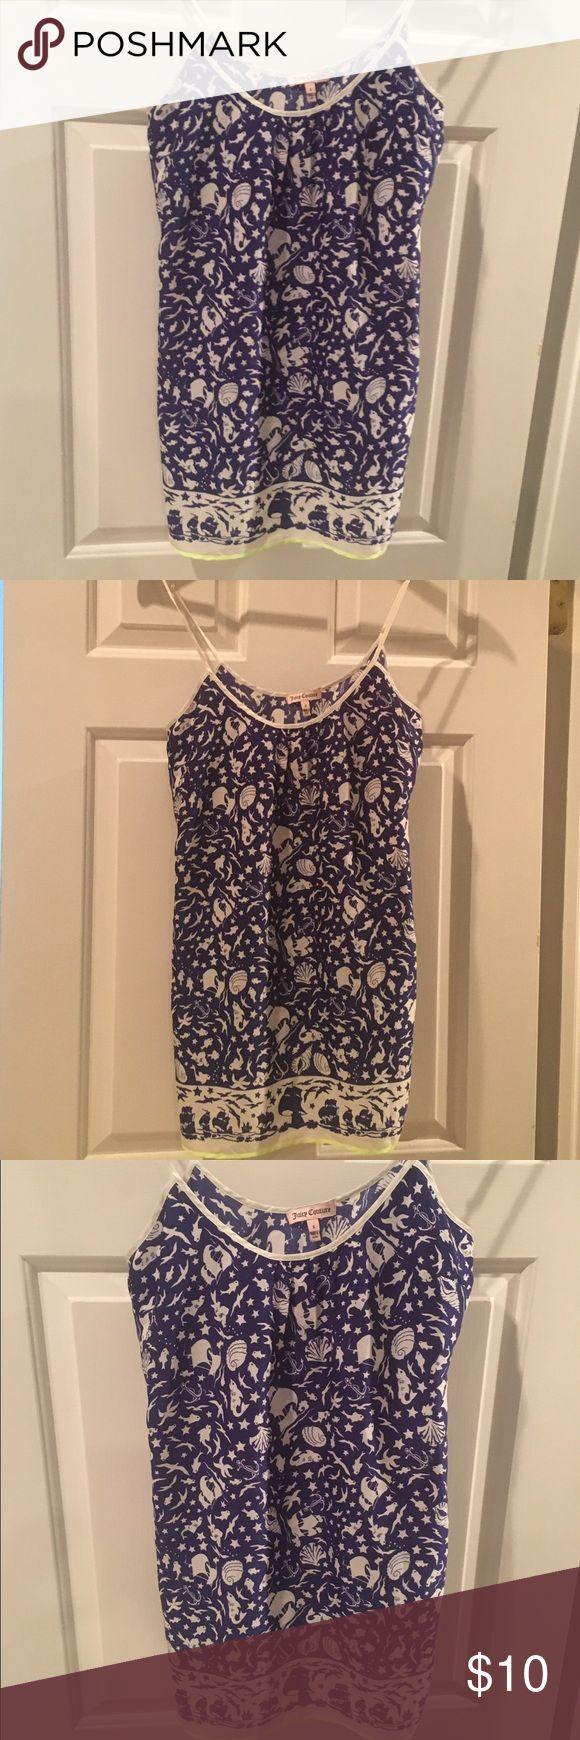 Juicy Couture Pajama  Sleep pretty like The Little Mermaid with this silly soft pajama from Juicy Couture  US Size: S. Material: Polyester. Juicy Couture Intimates & Sleepwear Chemises & Slips